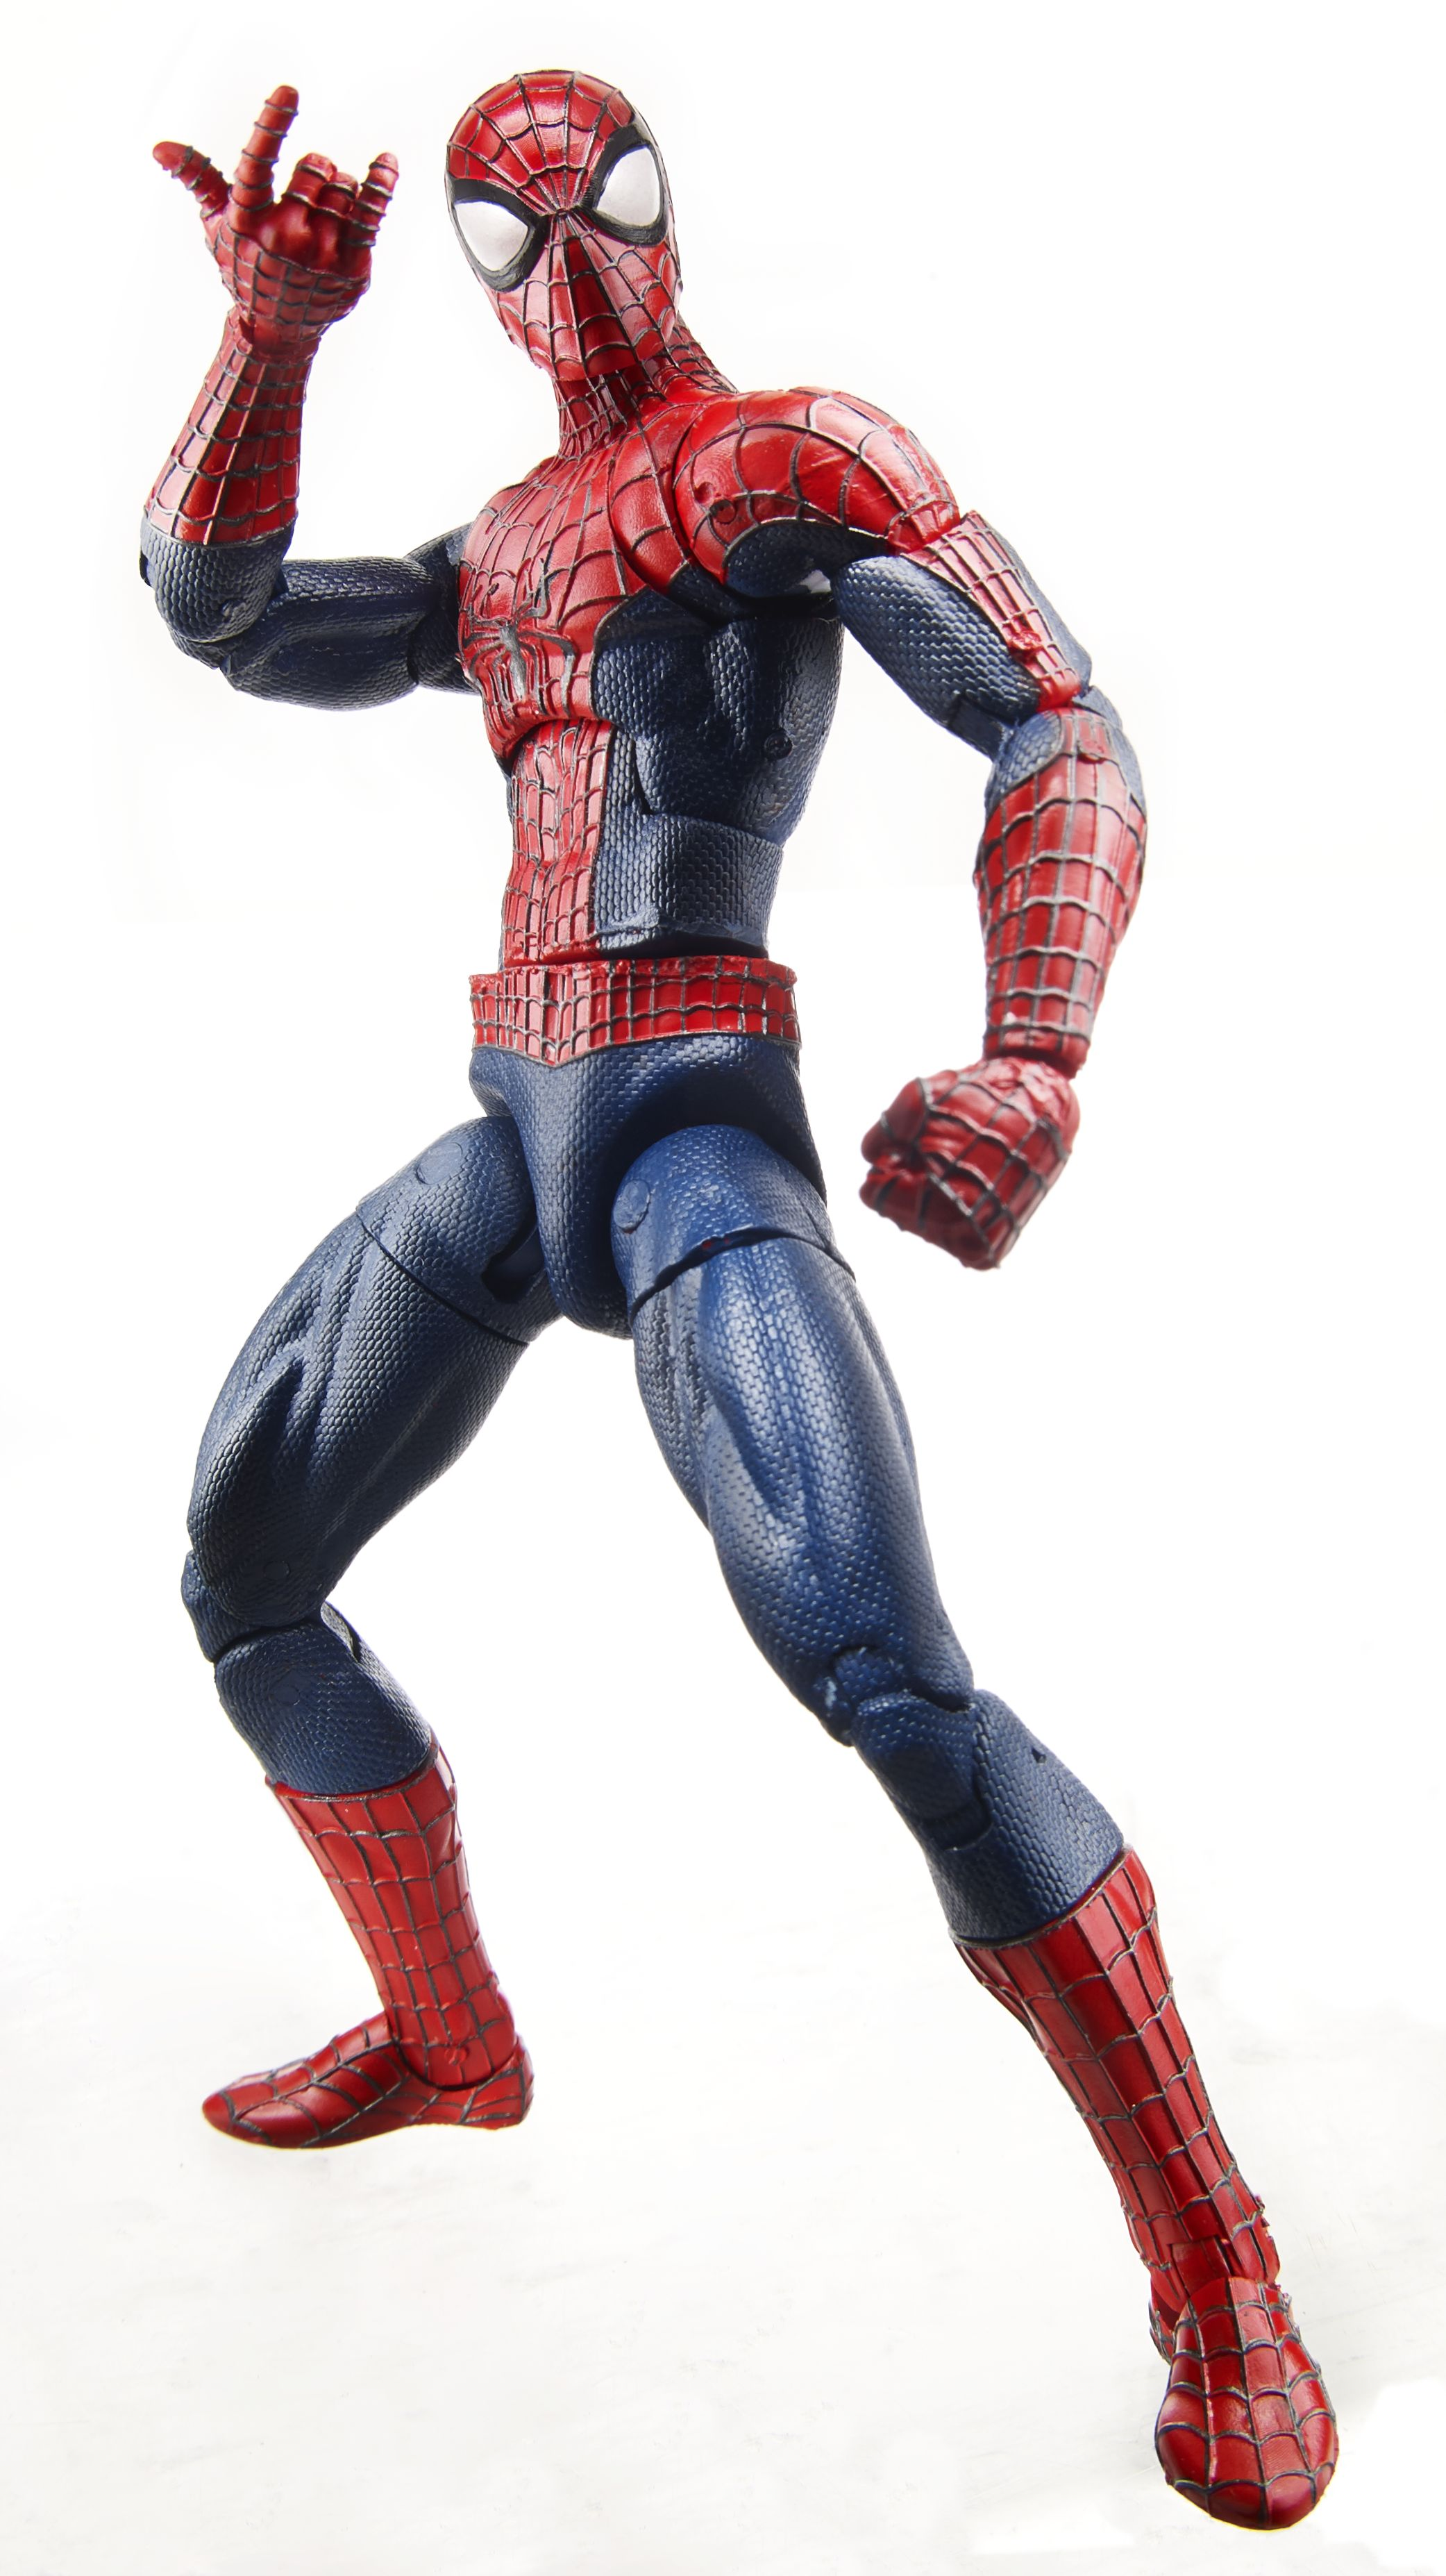 The amazing spider man toys - photo#17